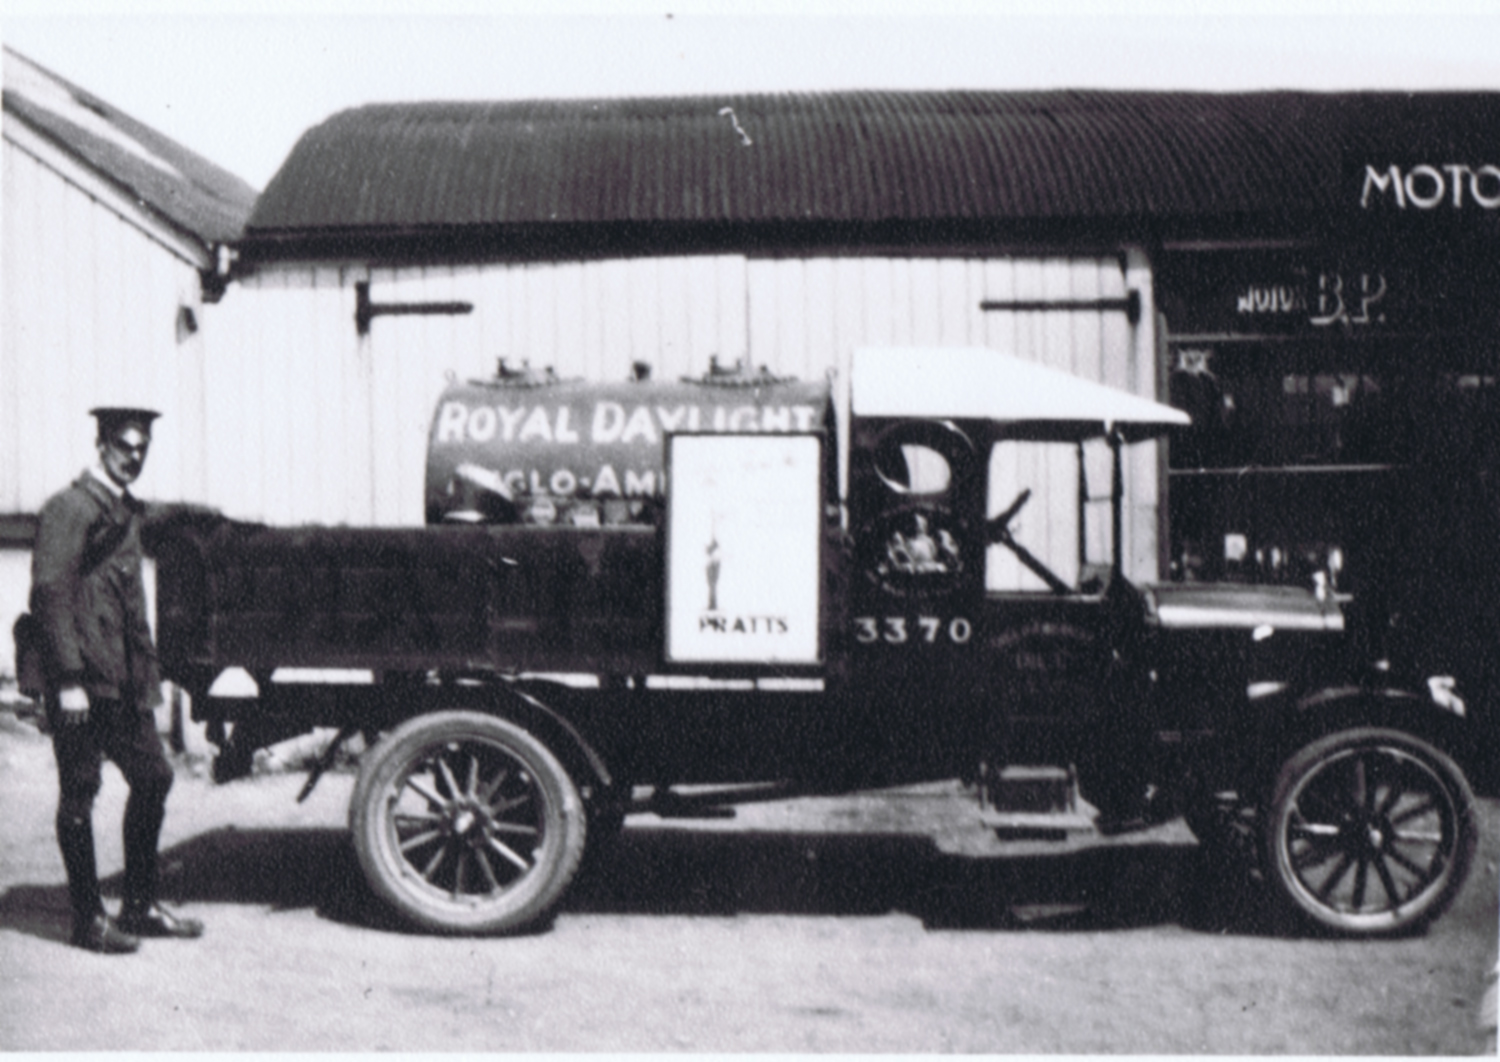 Anglo American Oil lorry, c.1926